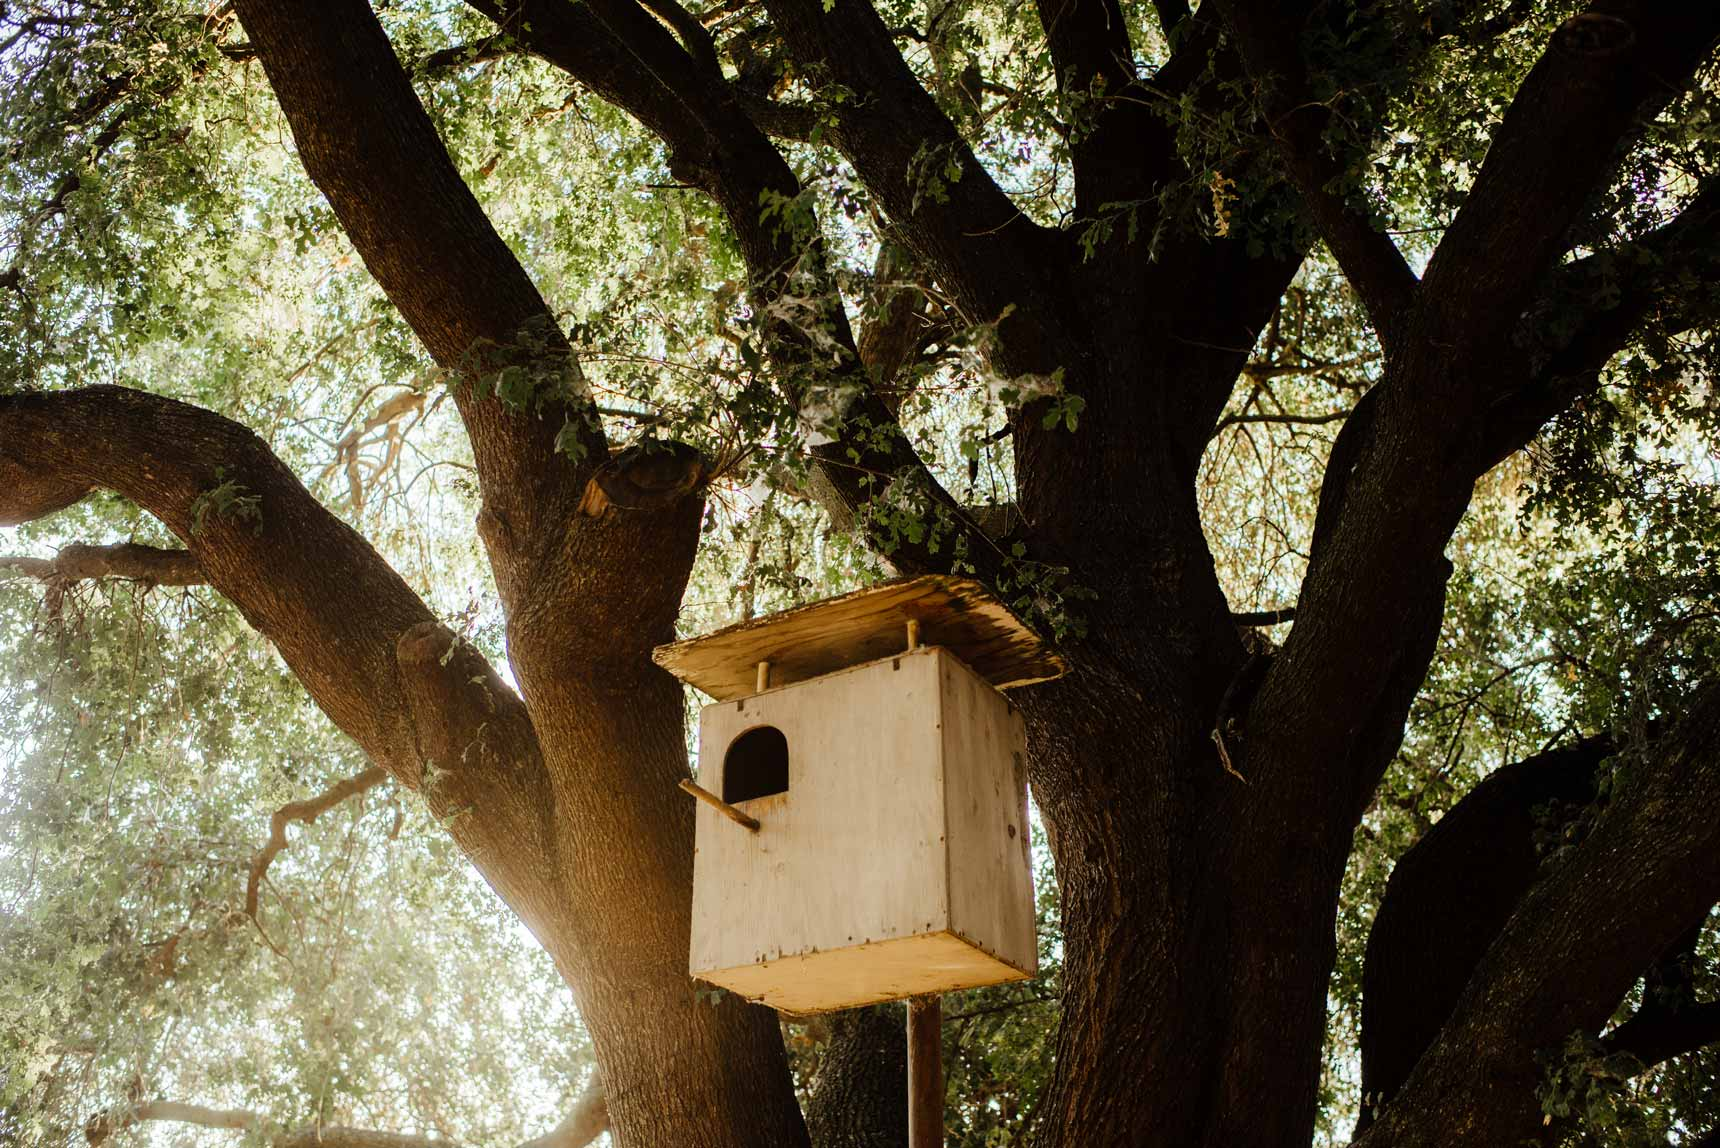 A birdhouse at sandpoint